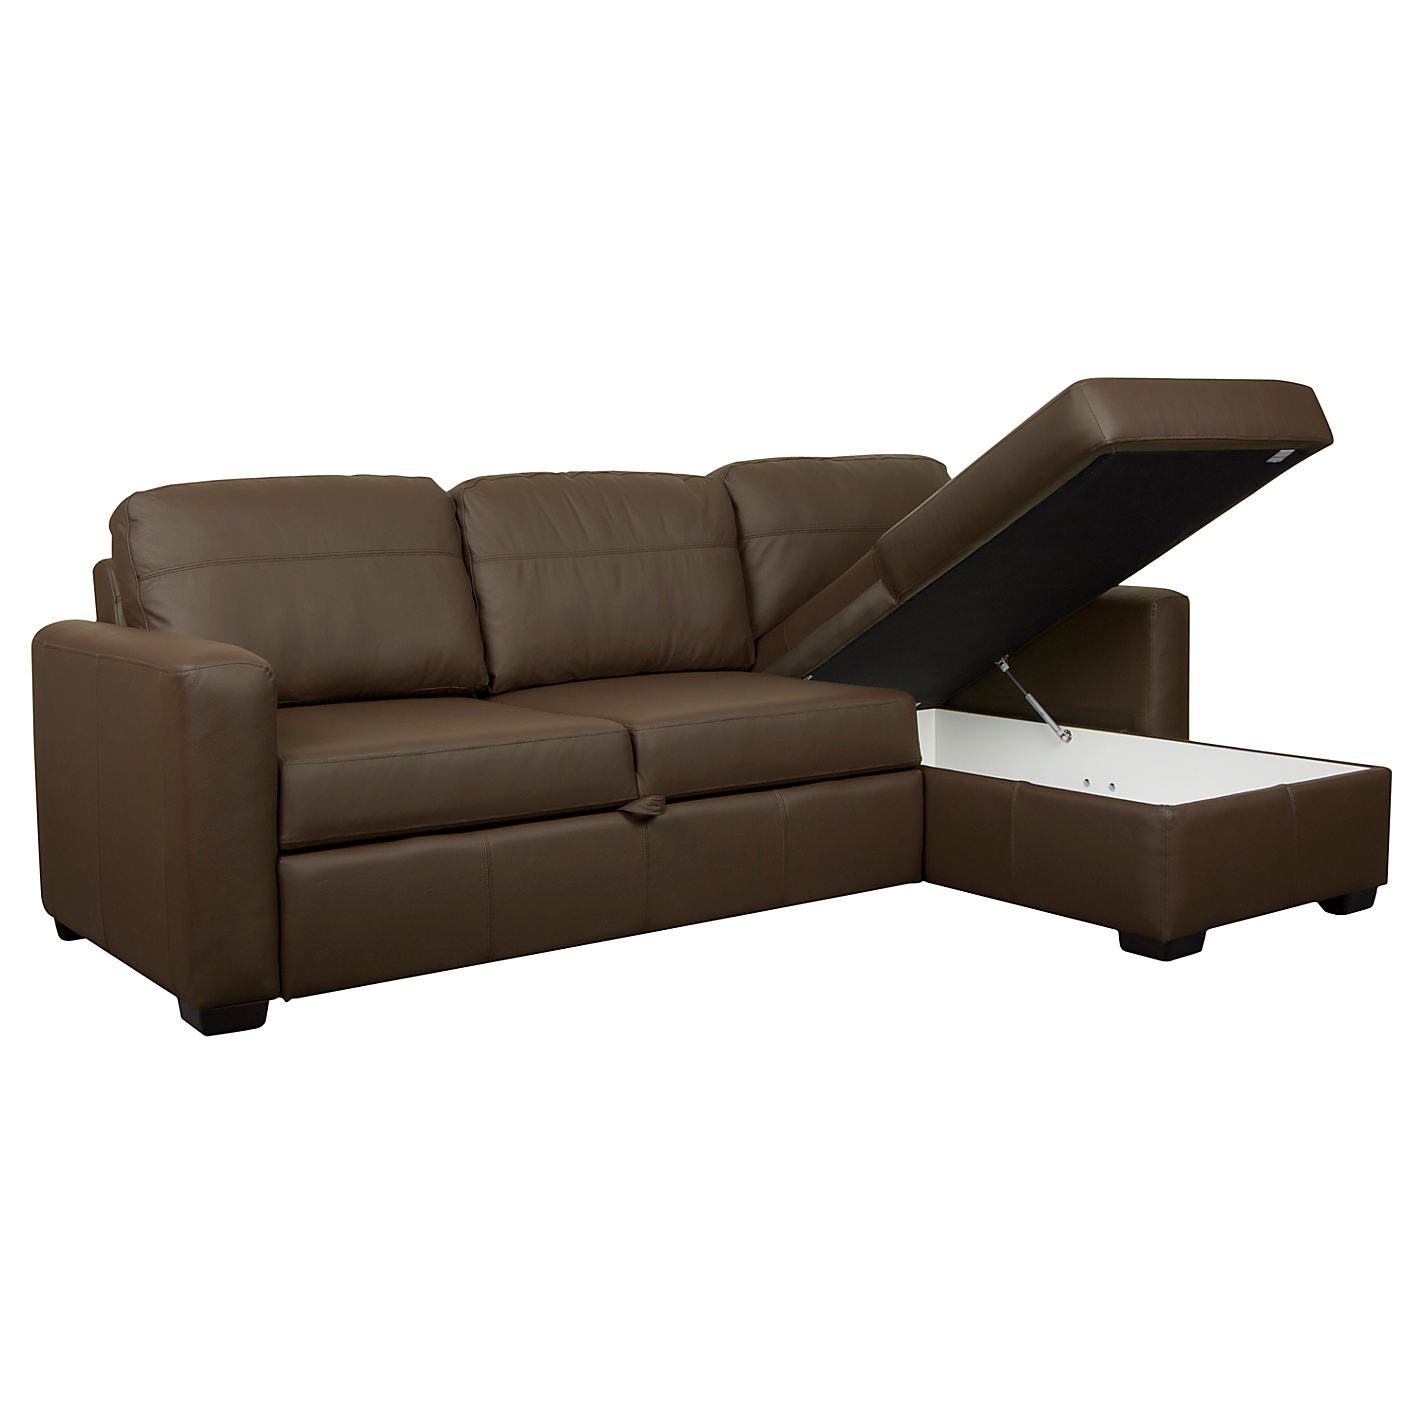 Attrayant Leather Corner Sofa Bed John Lewis Www Redglobalmx Org